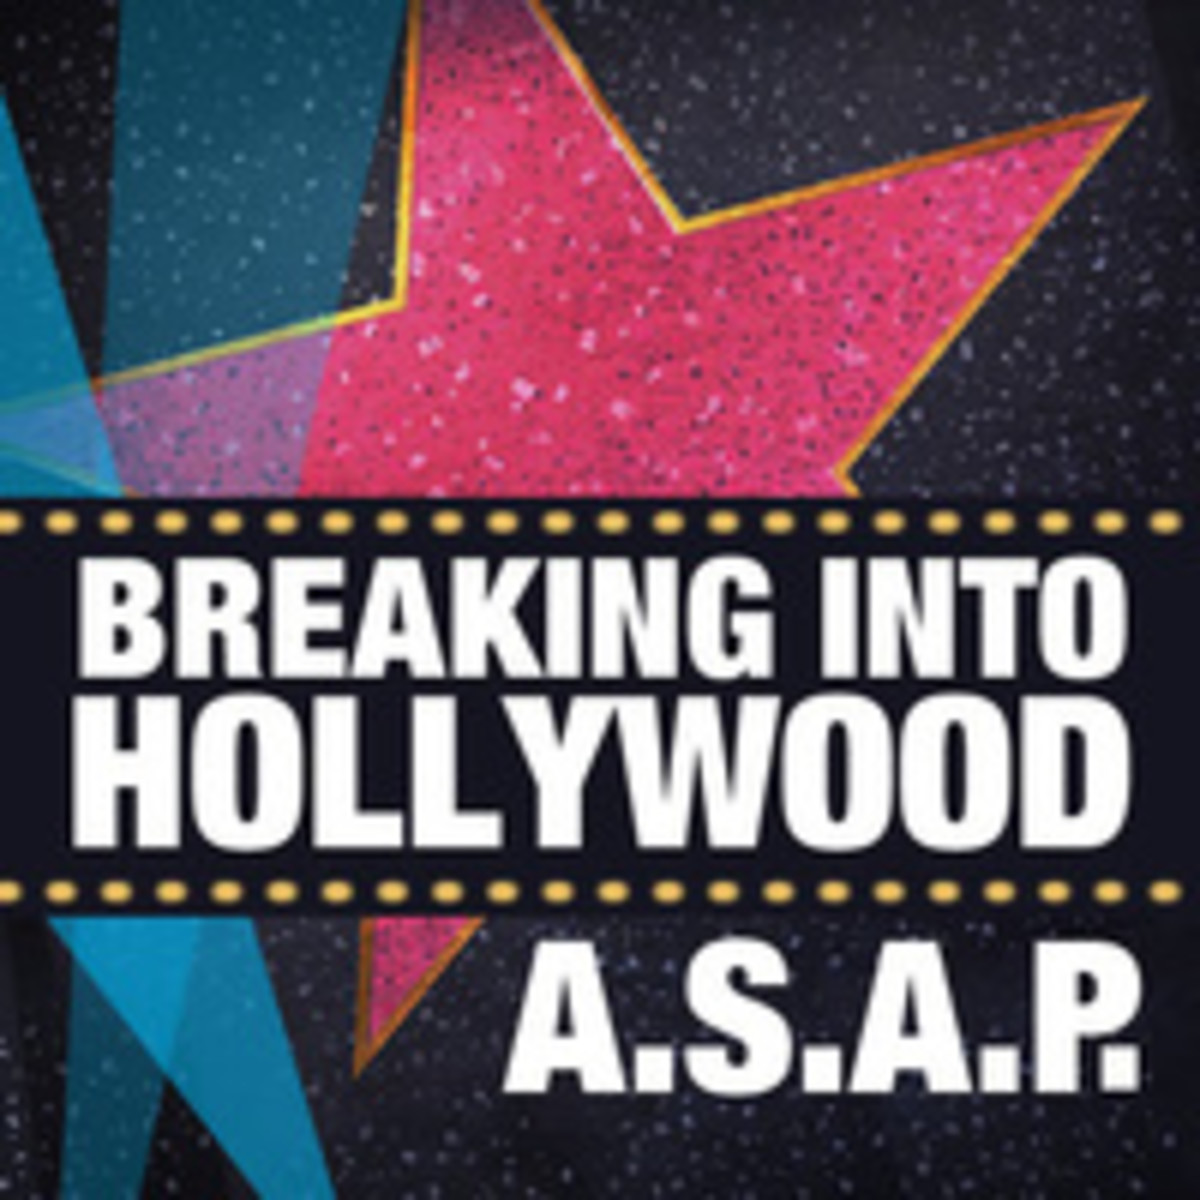 Breaking into Hollywood A.S.A.P.